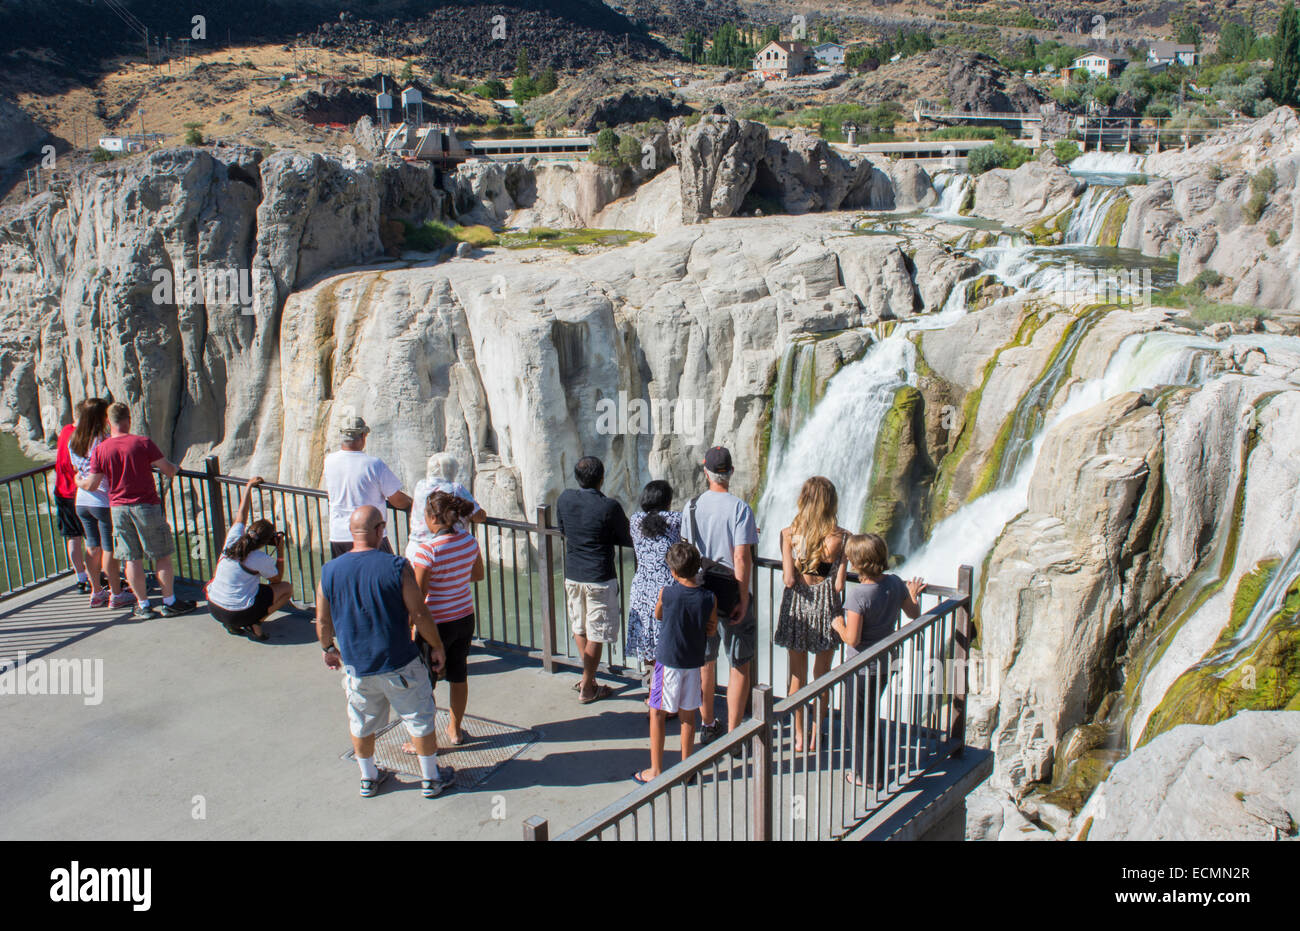 Twin Falls Idaho attraction of Shoshone Falls & Dierkes Lake with falls of water over the rocks - Stock Image